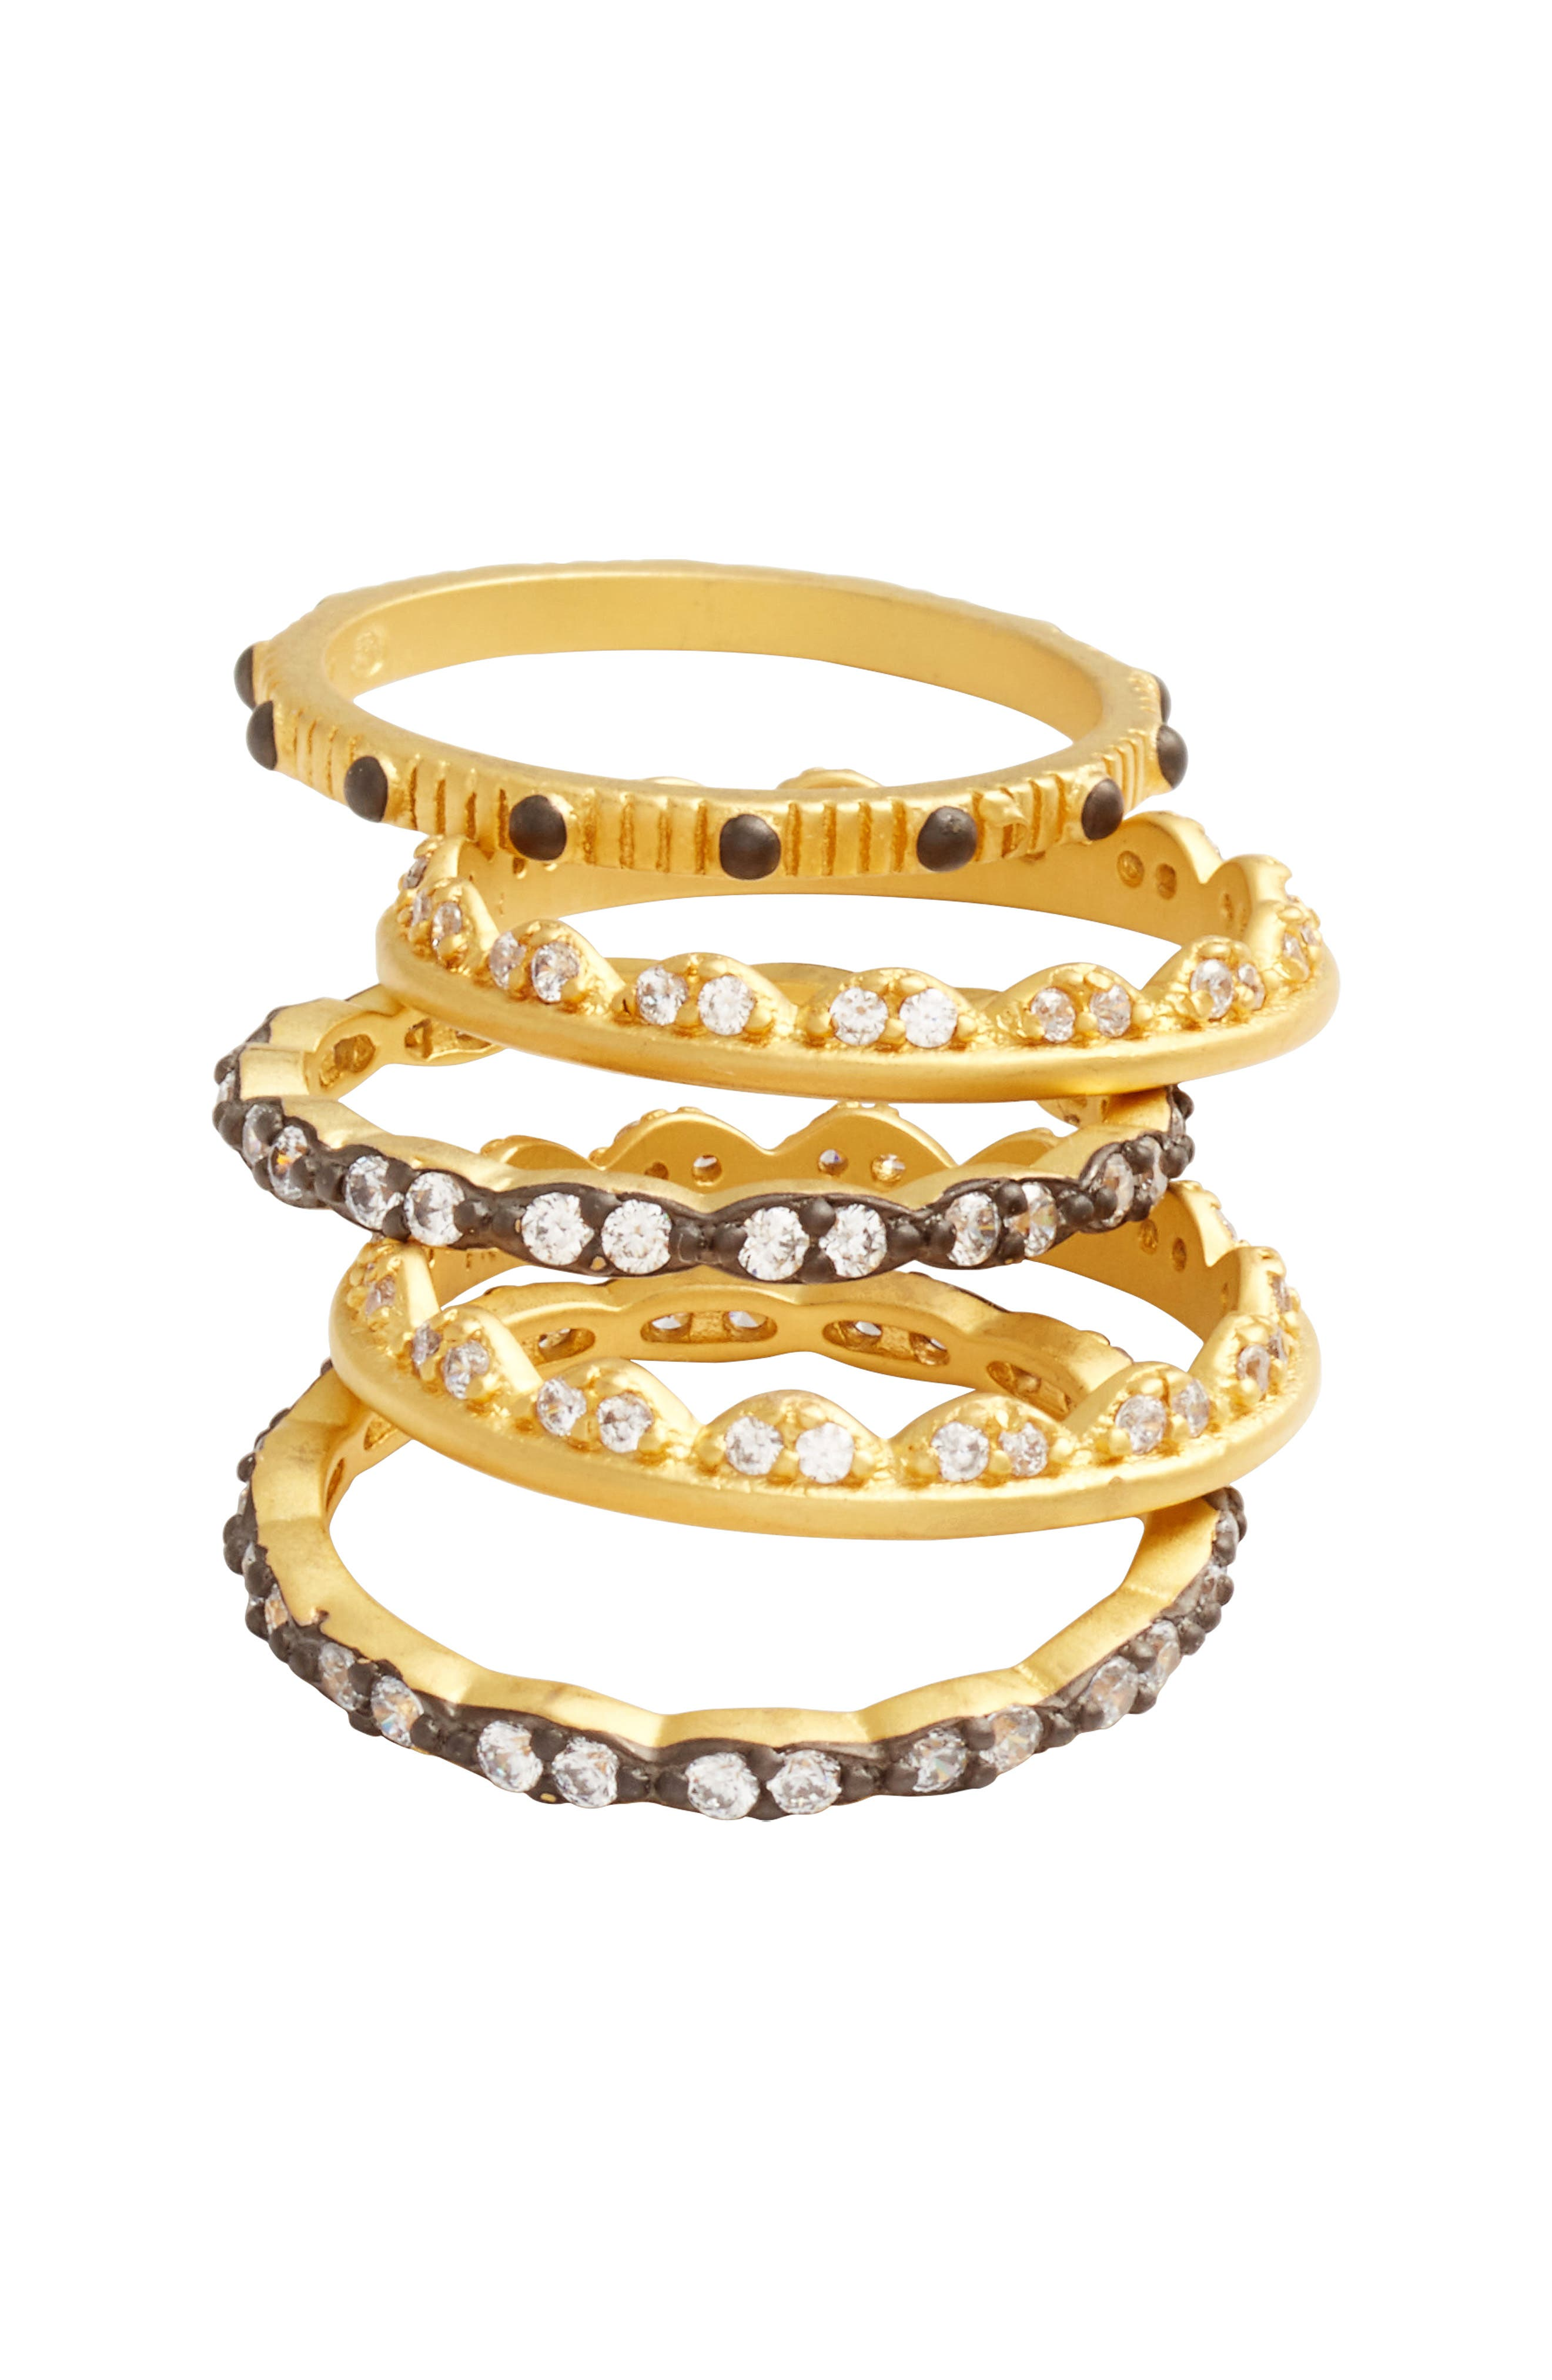 Set of 5 Stack Rings,                             Alternate thumbnail 4, color,                             Gold/ Black Rhodium